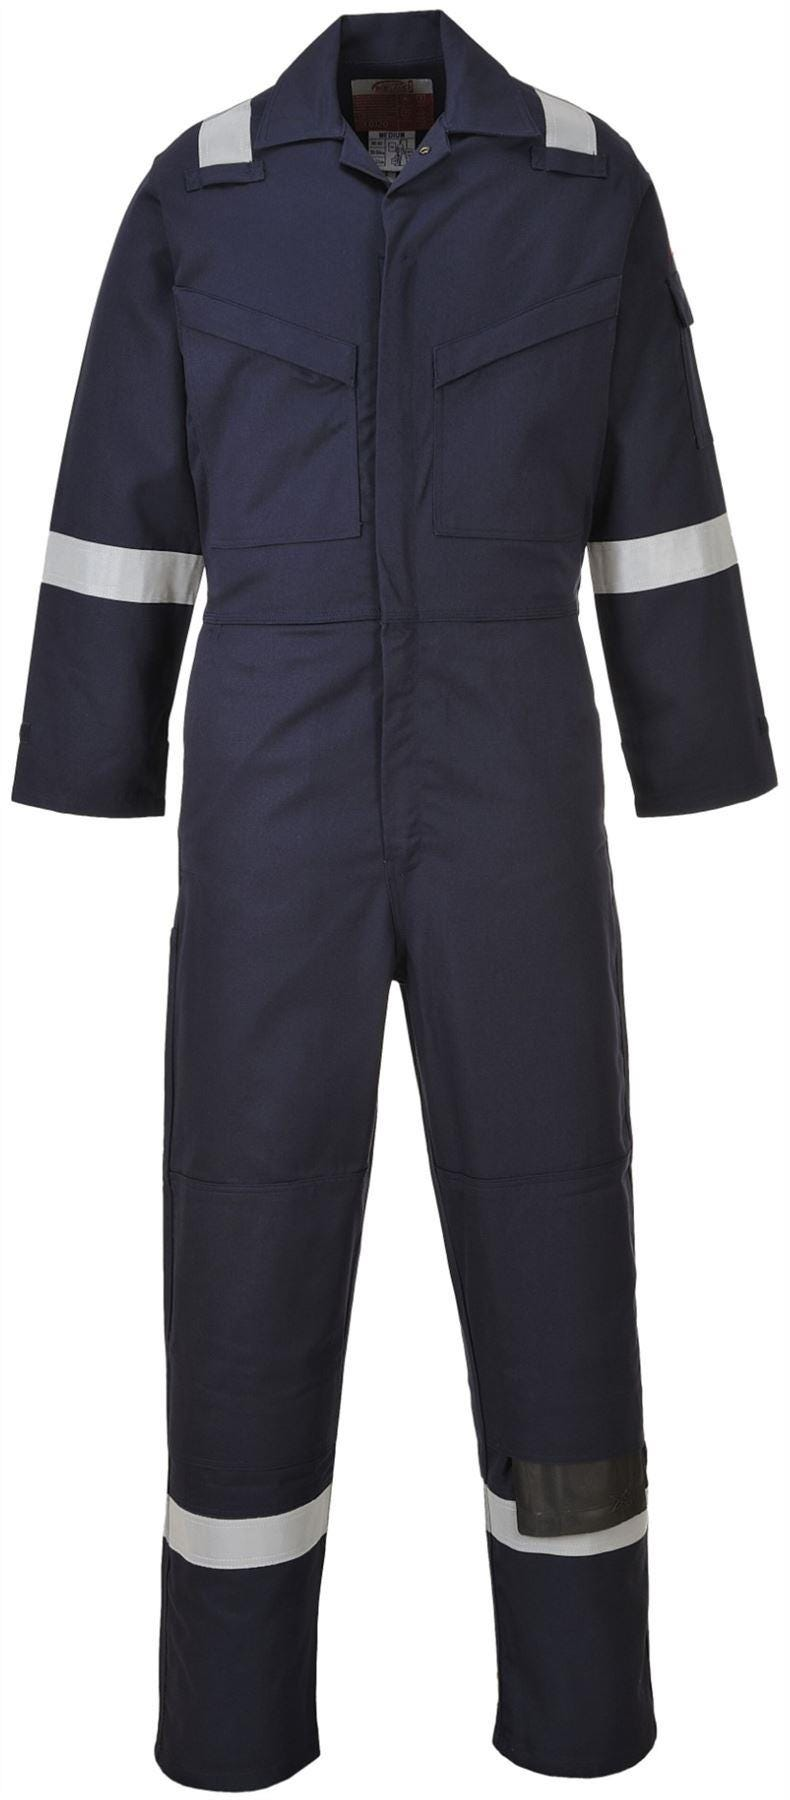 Portwest Flame Resistant Anti-Static Overall - Navy 3XL